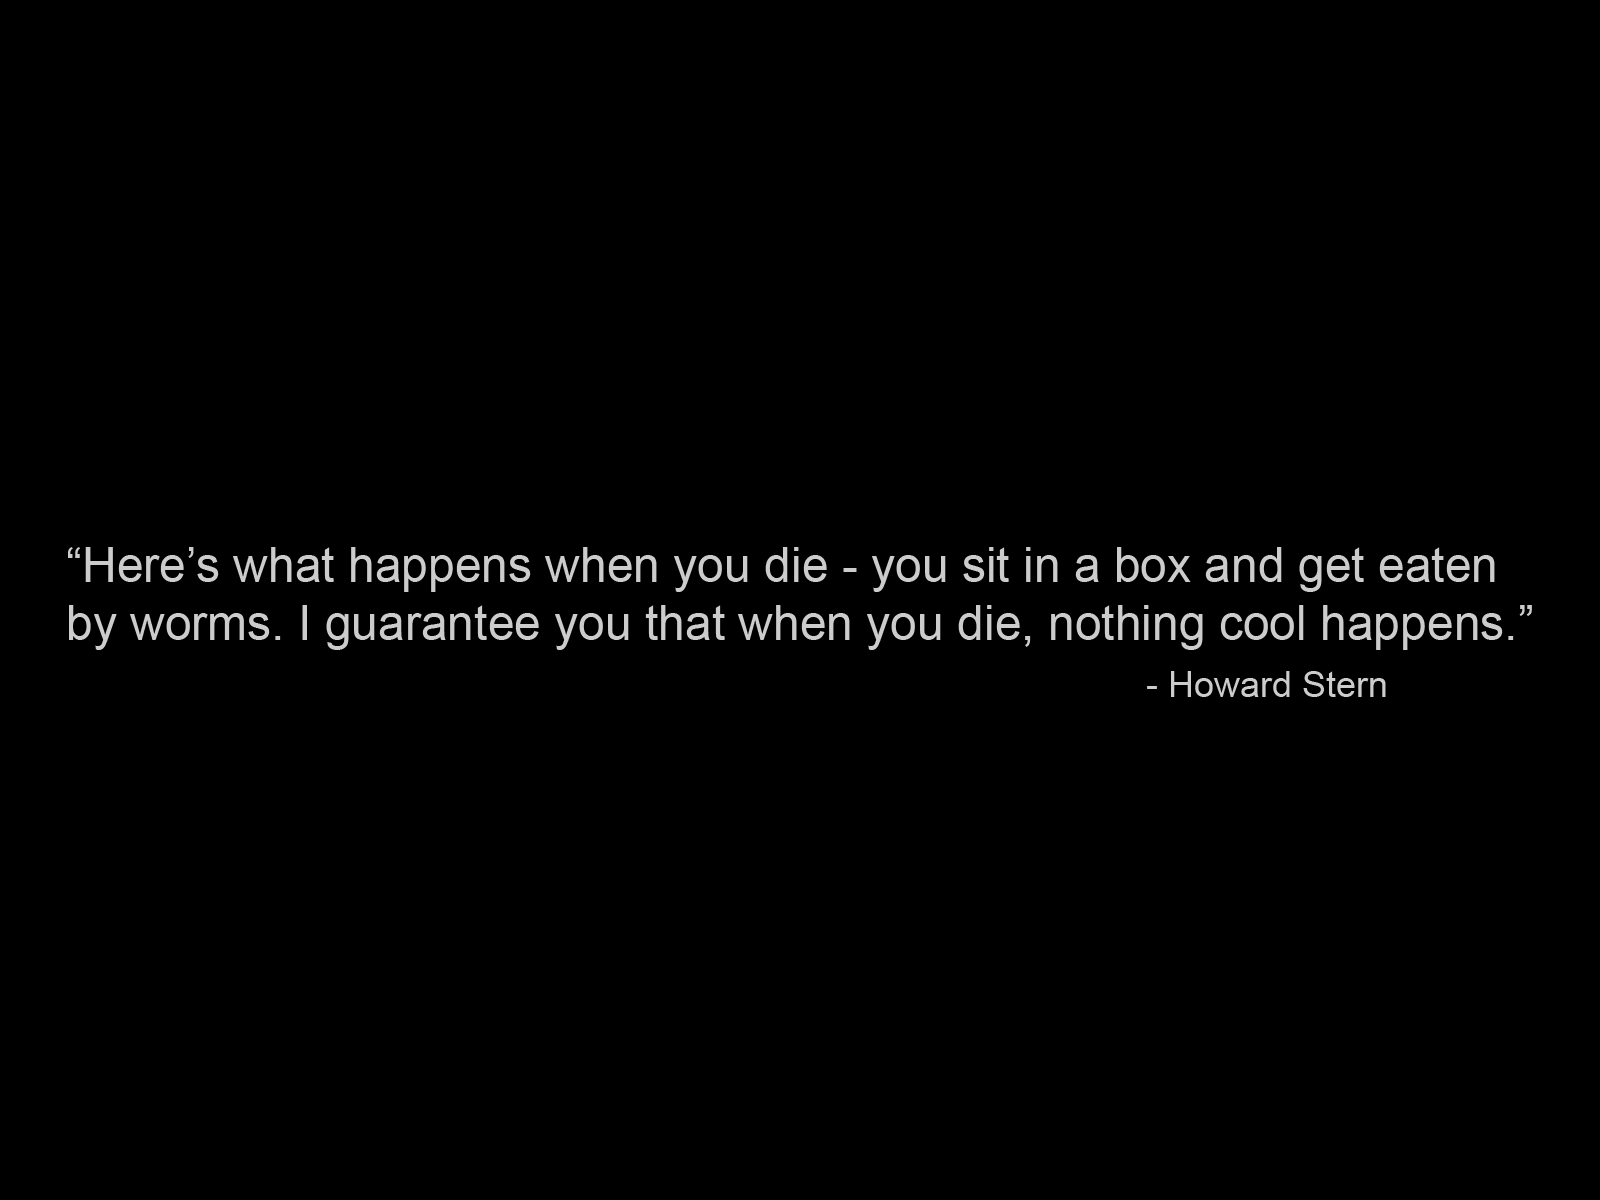 Howard Stern quote #1